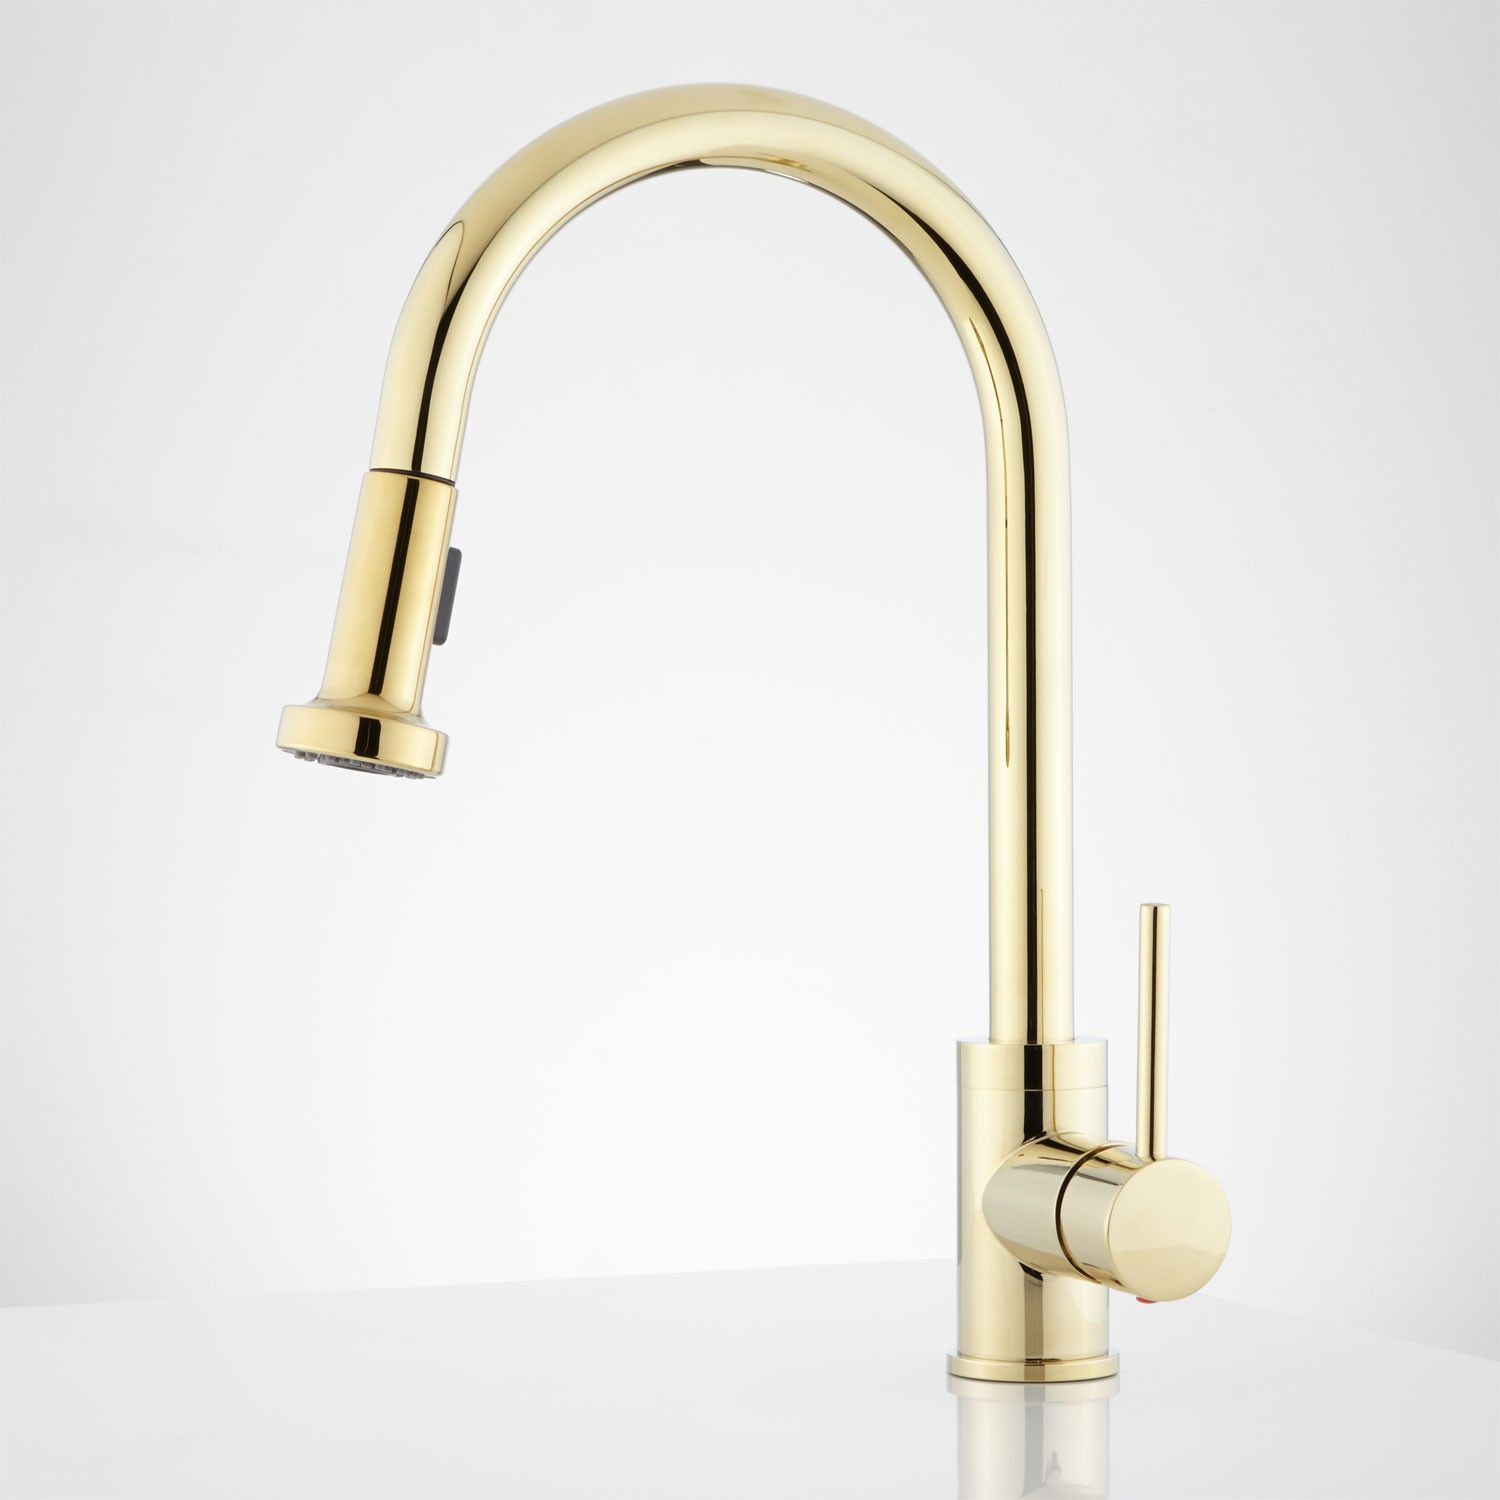 bathroom kitchen b head wholesale faucets faucet brush on torneira sink shower with font review delta aquabrass cozinha out pull unique vessel